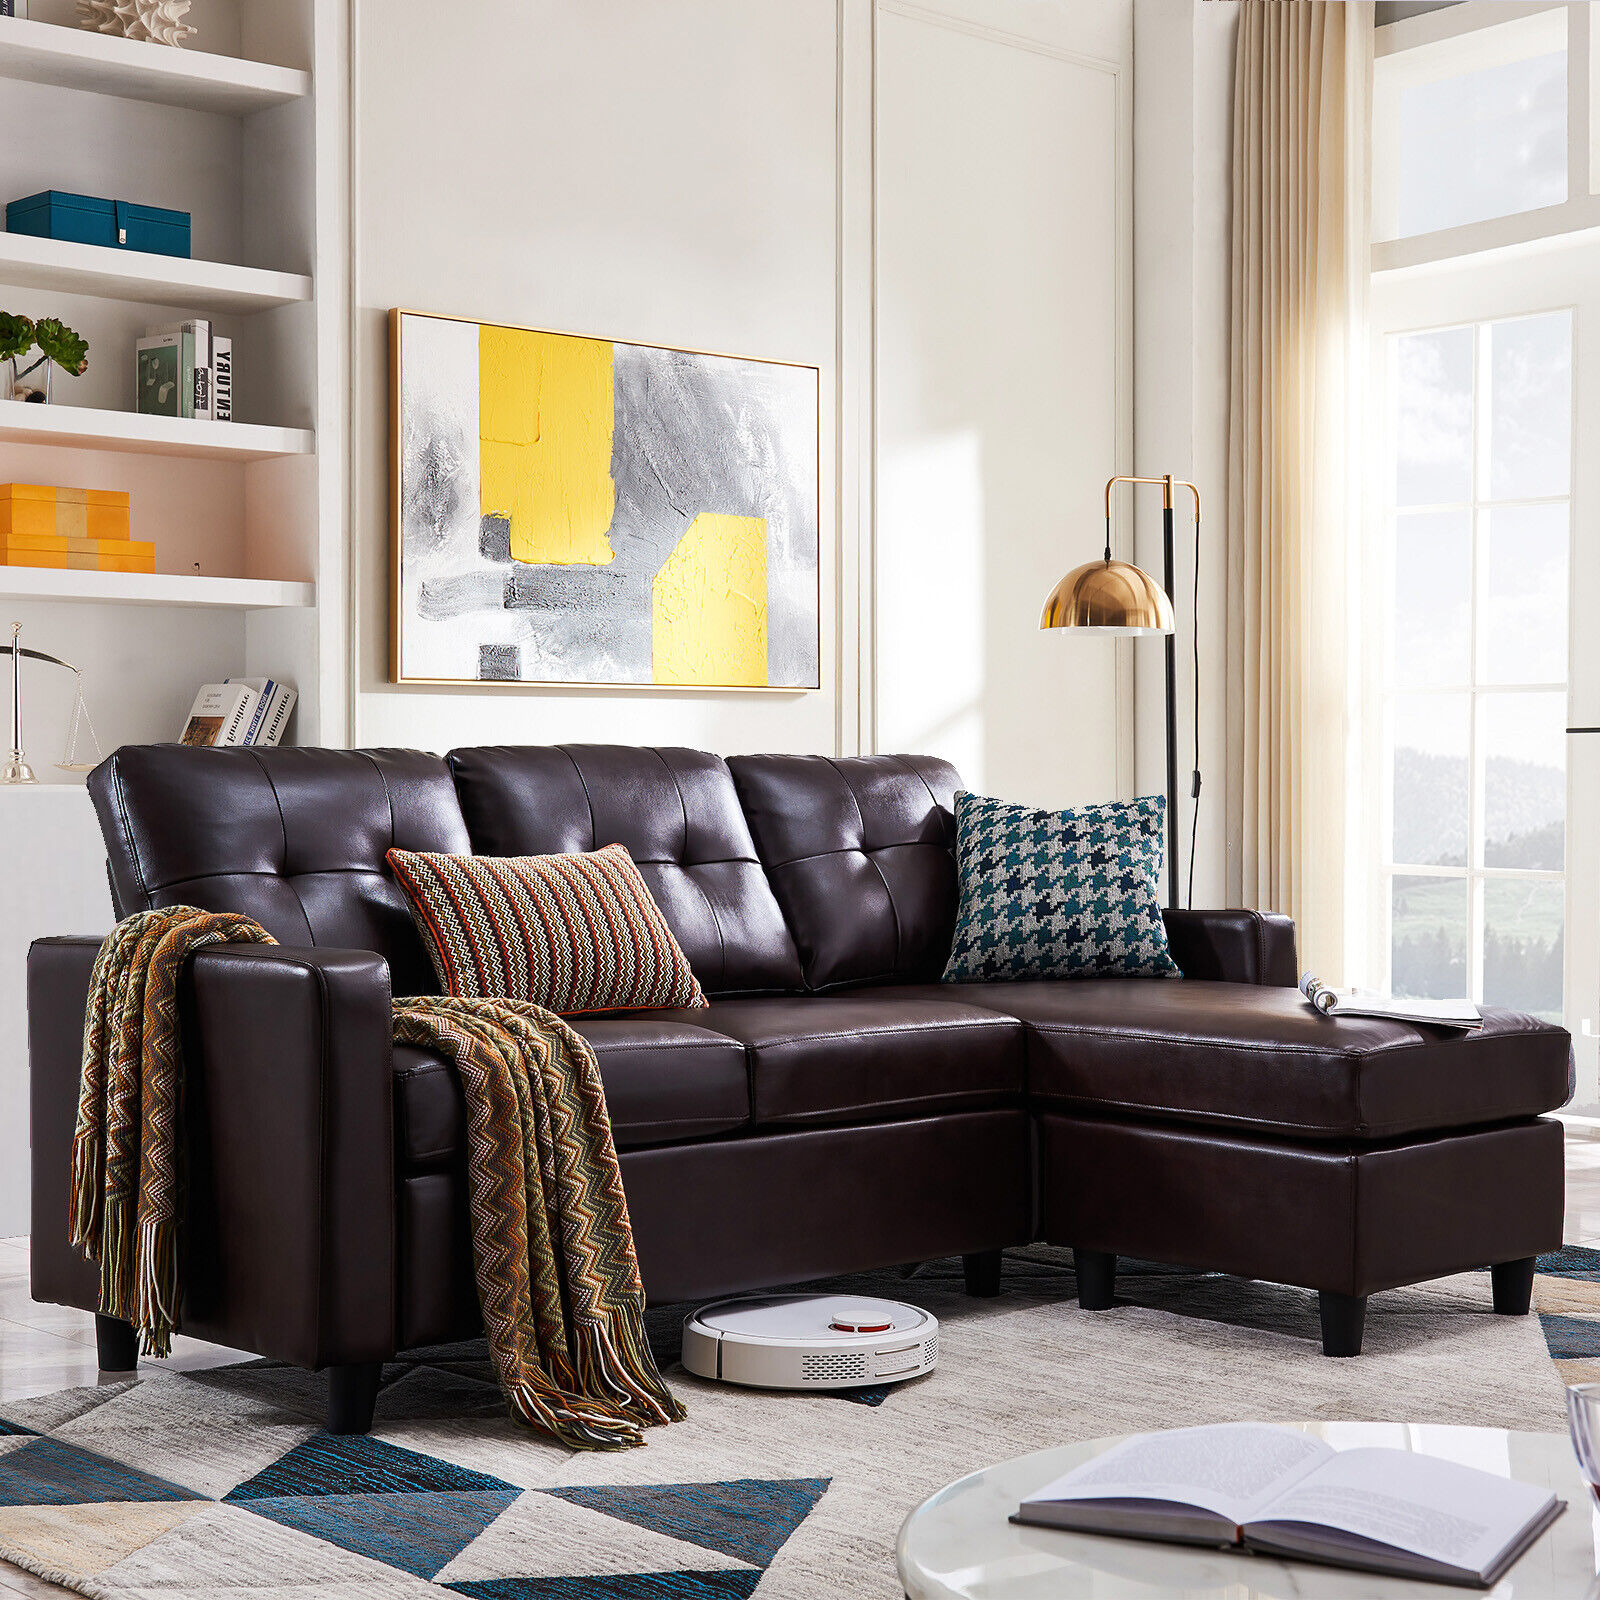 Pleasing Faux Leather Sectional Sofa L Shaped Couch W Reversible Chaise For Small Space Ibusinesslaw Wood Chair Design Ideas Ibusinesslaworg